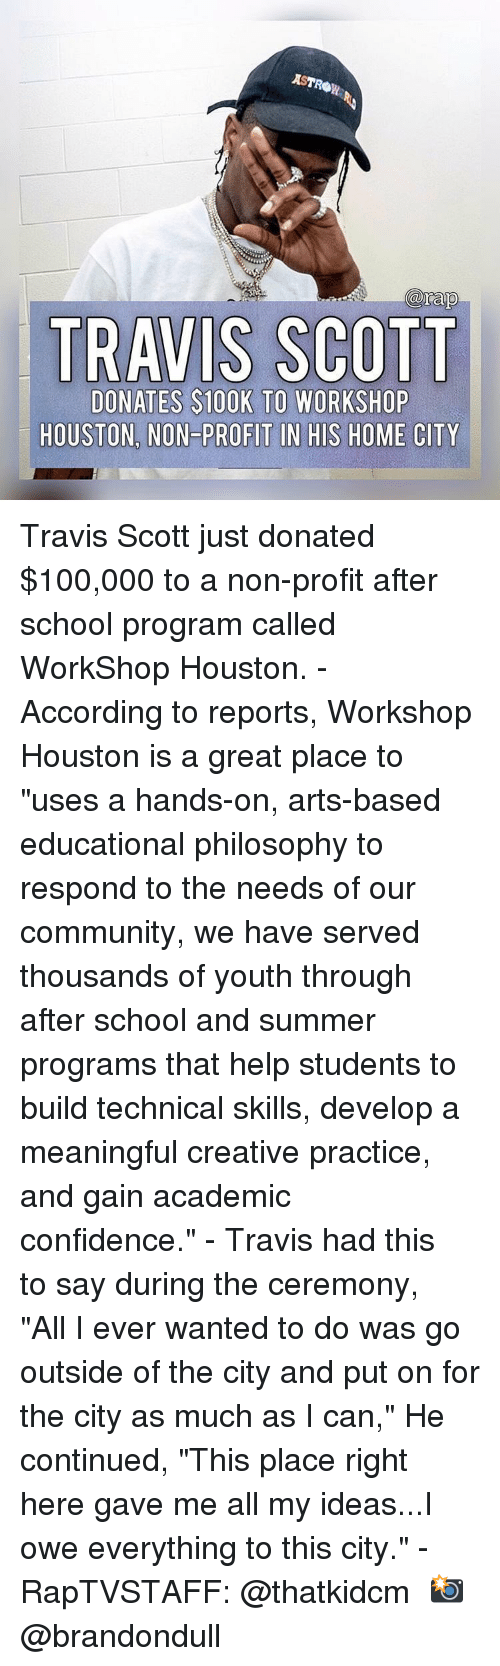 "100k: AST  arap  TRAVIS SCOTT  DONATES $100K TO WORKSHOP  HOUSTON, NON-PROFIT IN HIS HOME CITY Travis Scott just donated $100,000 to a non-profit after school program called WorkShop Houston.⁣ -⁣ According to reports, Workshop Houston is a great place to ""uses a hands-on, arts-based educational philosophy to respond to the needs of our community, we have served thousands of youth through after school and summer programs that help students to build technical skills, develop a meaningful creative practice, and gain academic confidence.""⁣ -⁣ Travis had this to say during the ceremony, ⁣ ⁣ ""All I ever wanted to do was go outside of the city and put on for the city as much as I can,"" He continued, ""This place right here gave me all my ideas...I owe everything to this city.""⁣ -⁣ RapTVSTAFF: @thatkidcm⁣ 📸 @brandondull"